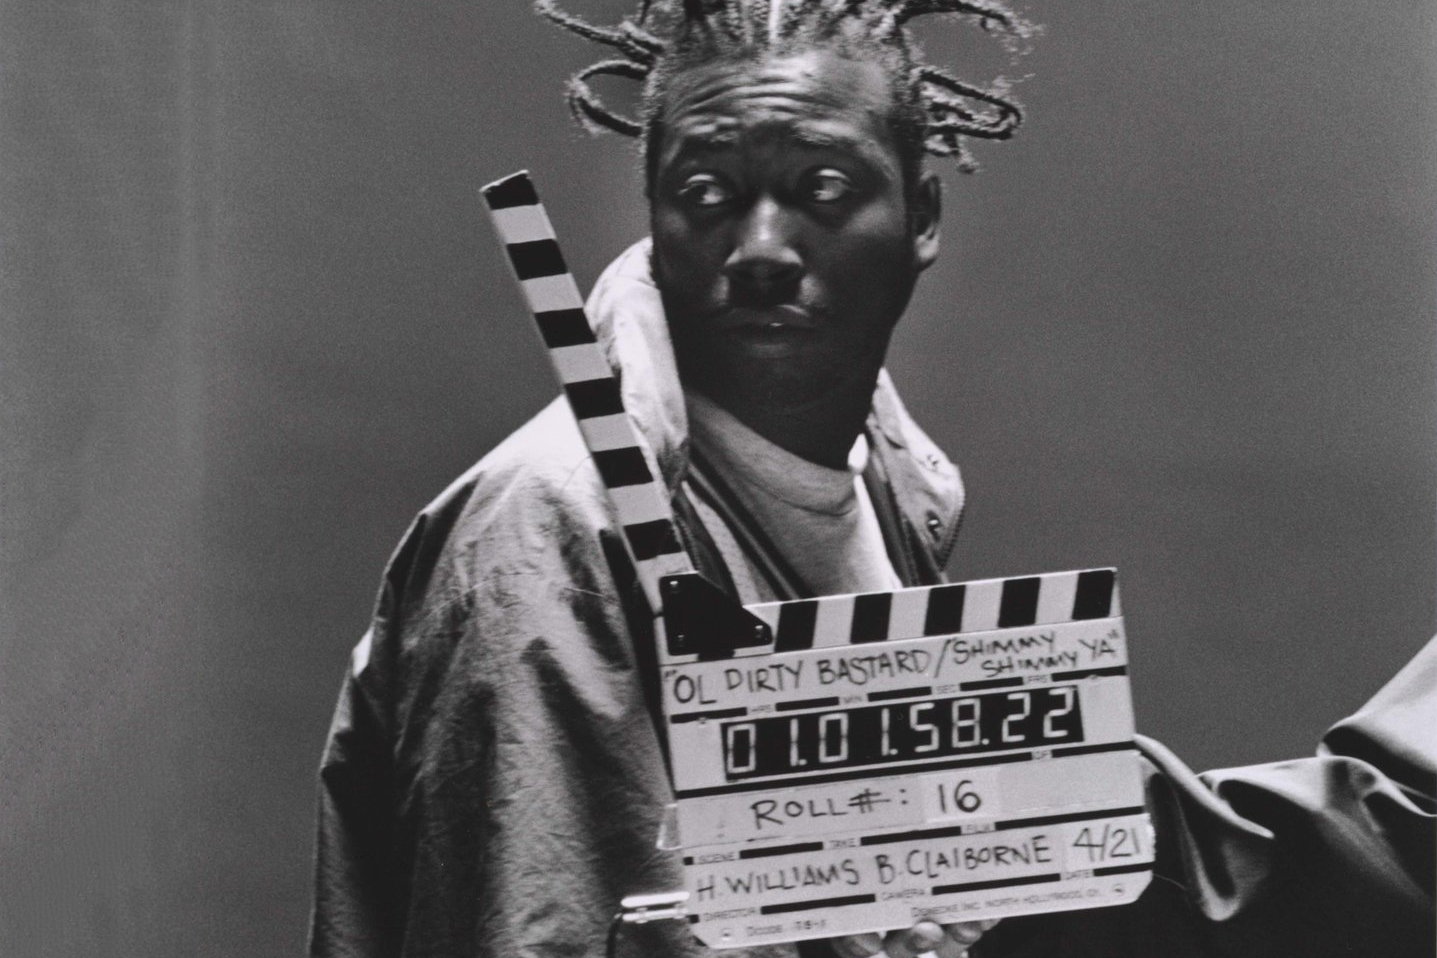 The Smithsonian's Latest Collection Is a Time Capsule of Photos Documenting Hip-Hop's Golden Age